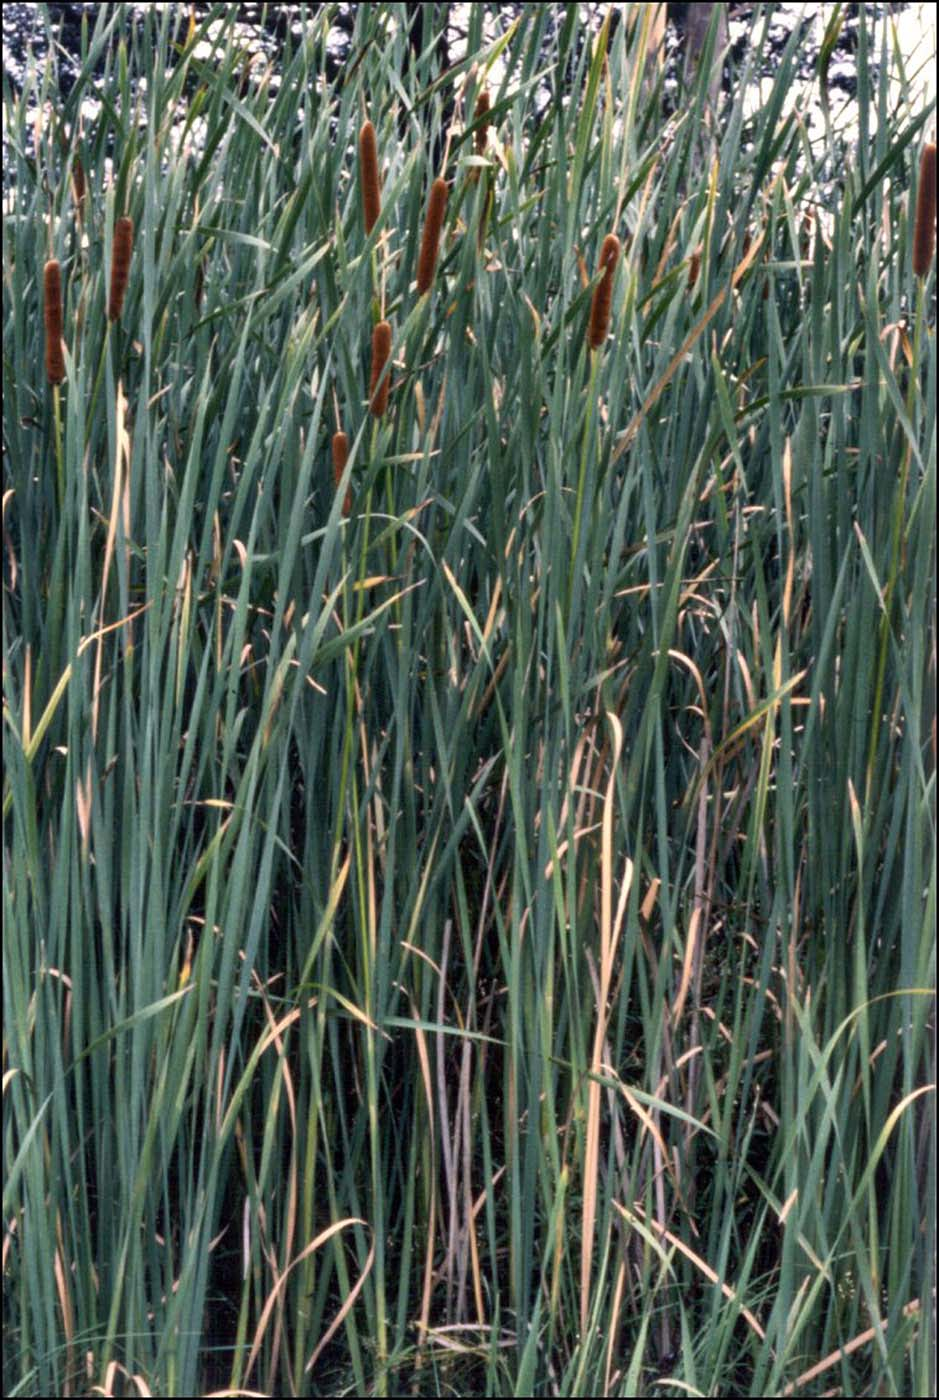 Reed-like plants, mainly pale green in colour, with brown flower spikes on the upper reaches of some. - click to view larger image